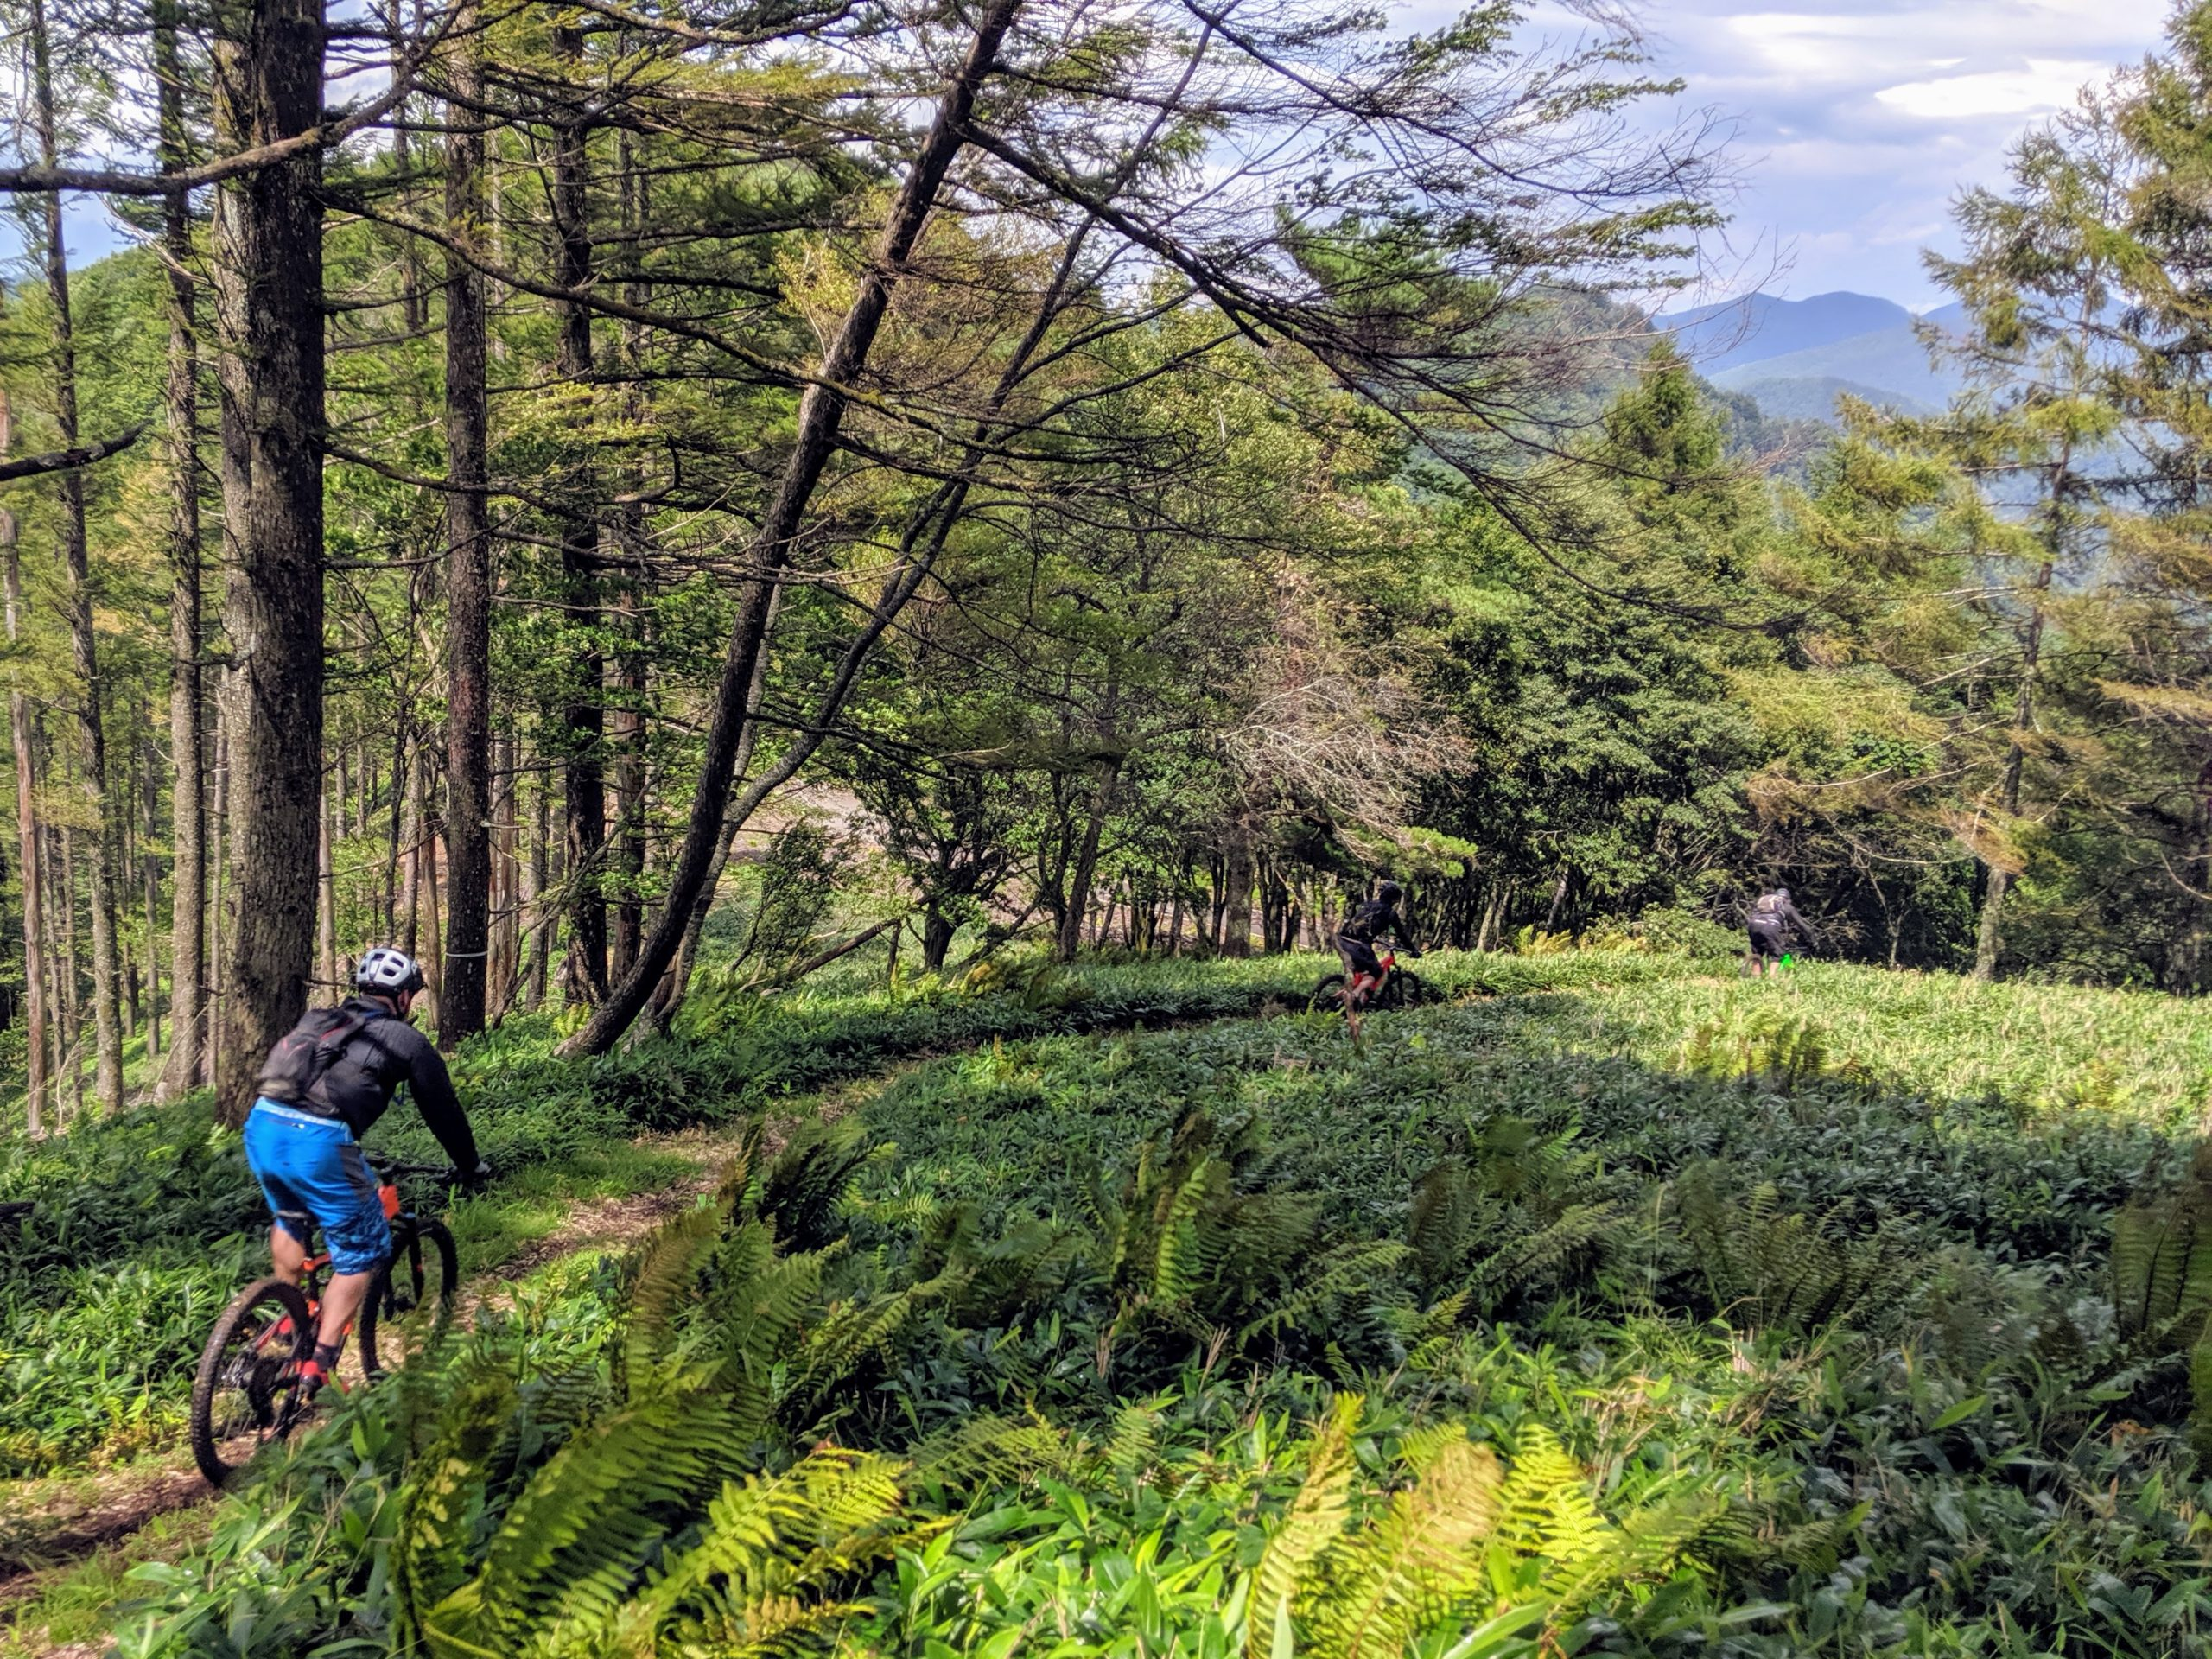 13 Days Exploring Japan's Mountain Bike Trails and Cuisine - Singletracks Mountain Bike News